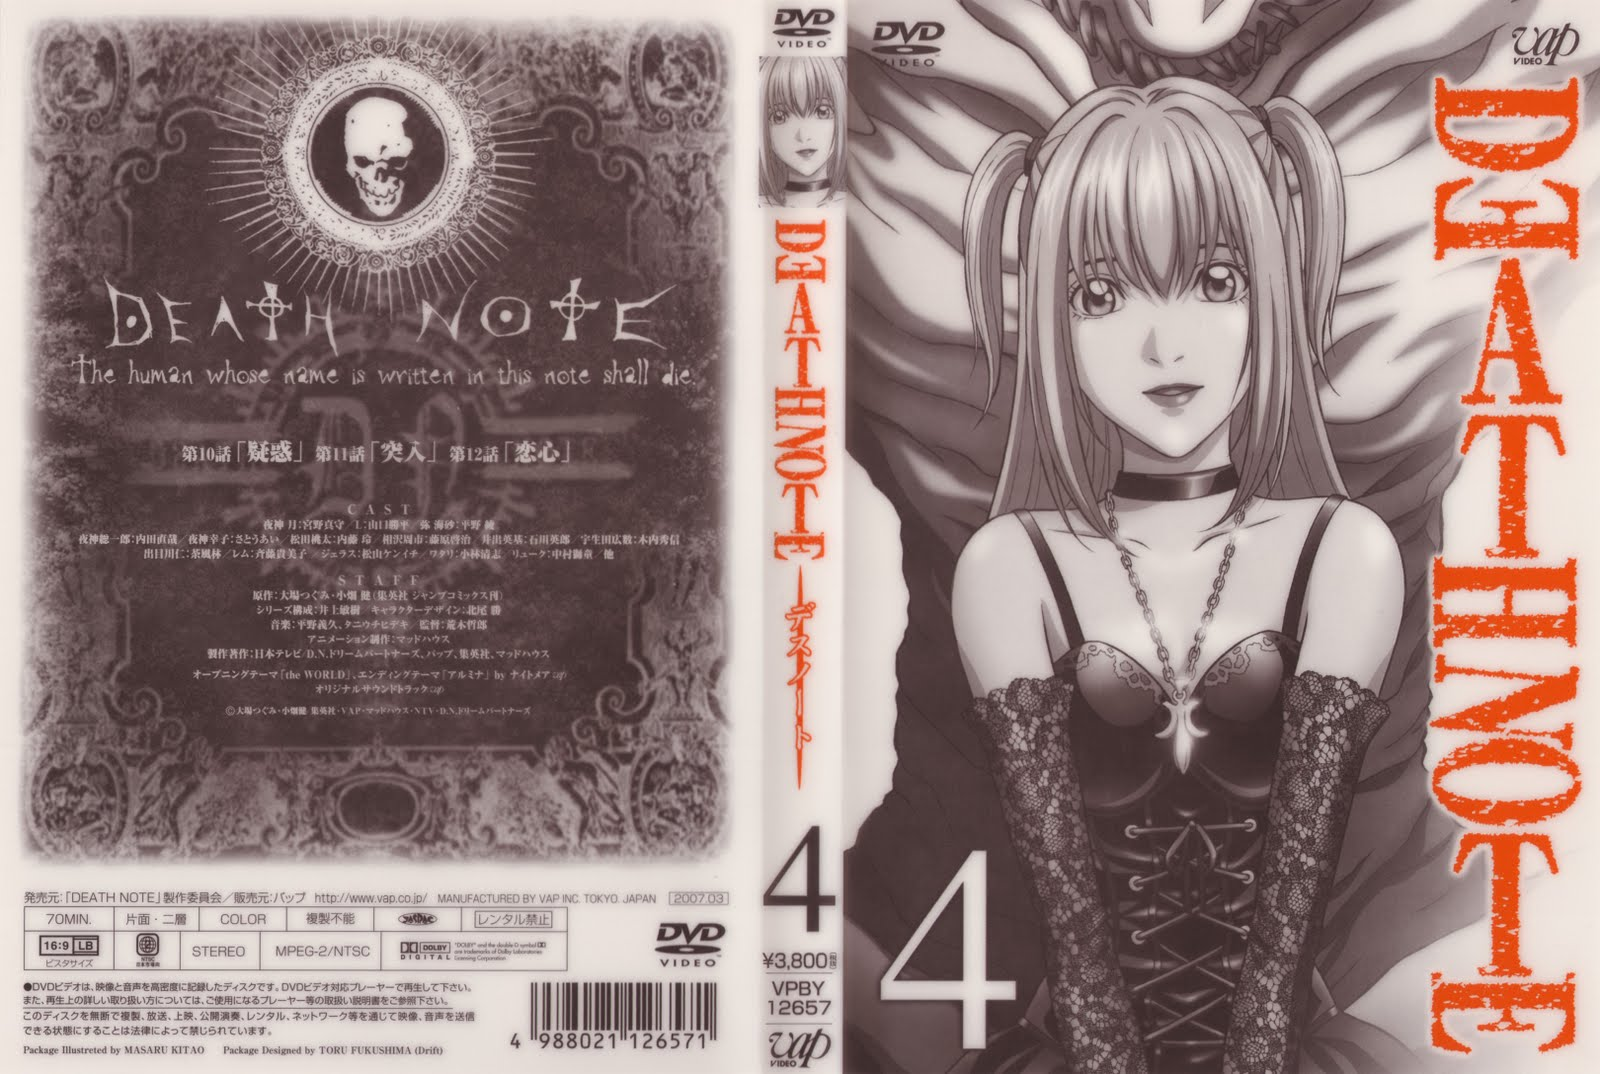 DVD COVERS AND LABELS: Death Note Vol 4